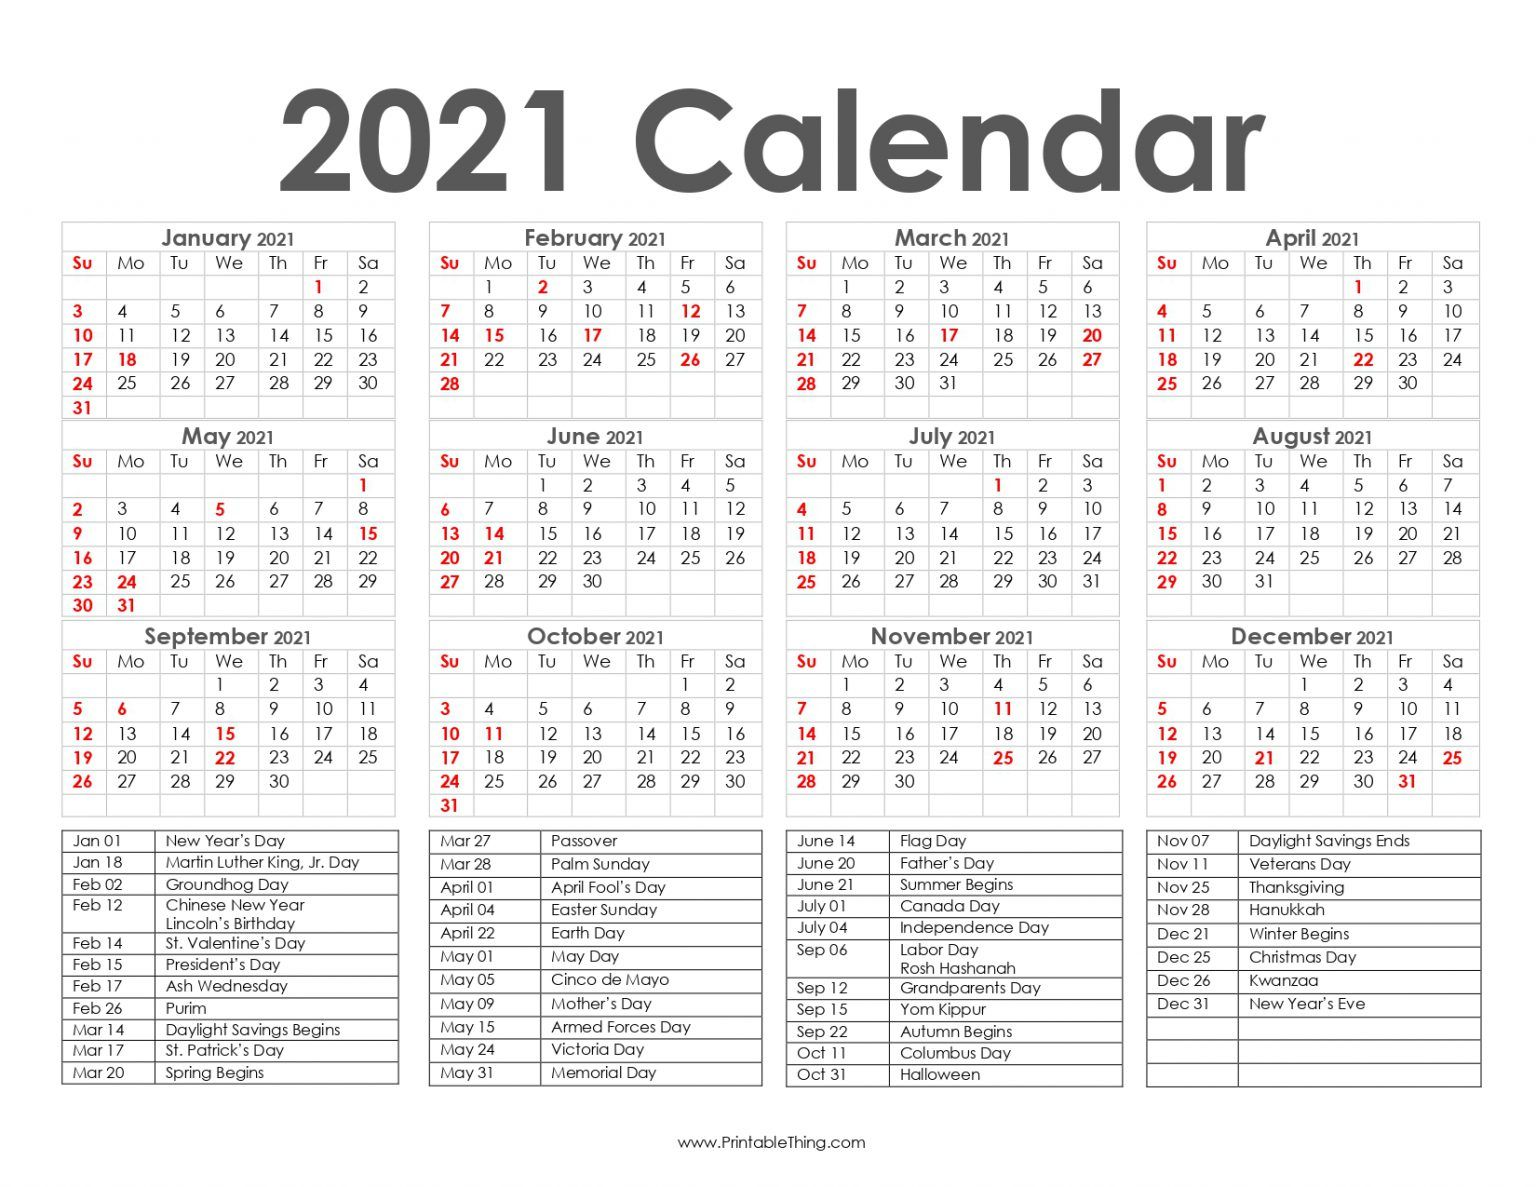 Uw 2022 Calendar.Get Access To A Different Type Of 2021 2022 Calendar Printable Pdf Templates Artsentertainment Newscurren In 2021 Calendar Printables Monthly Template Pdf Templates